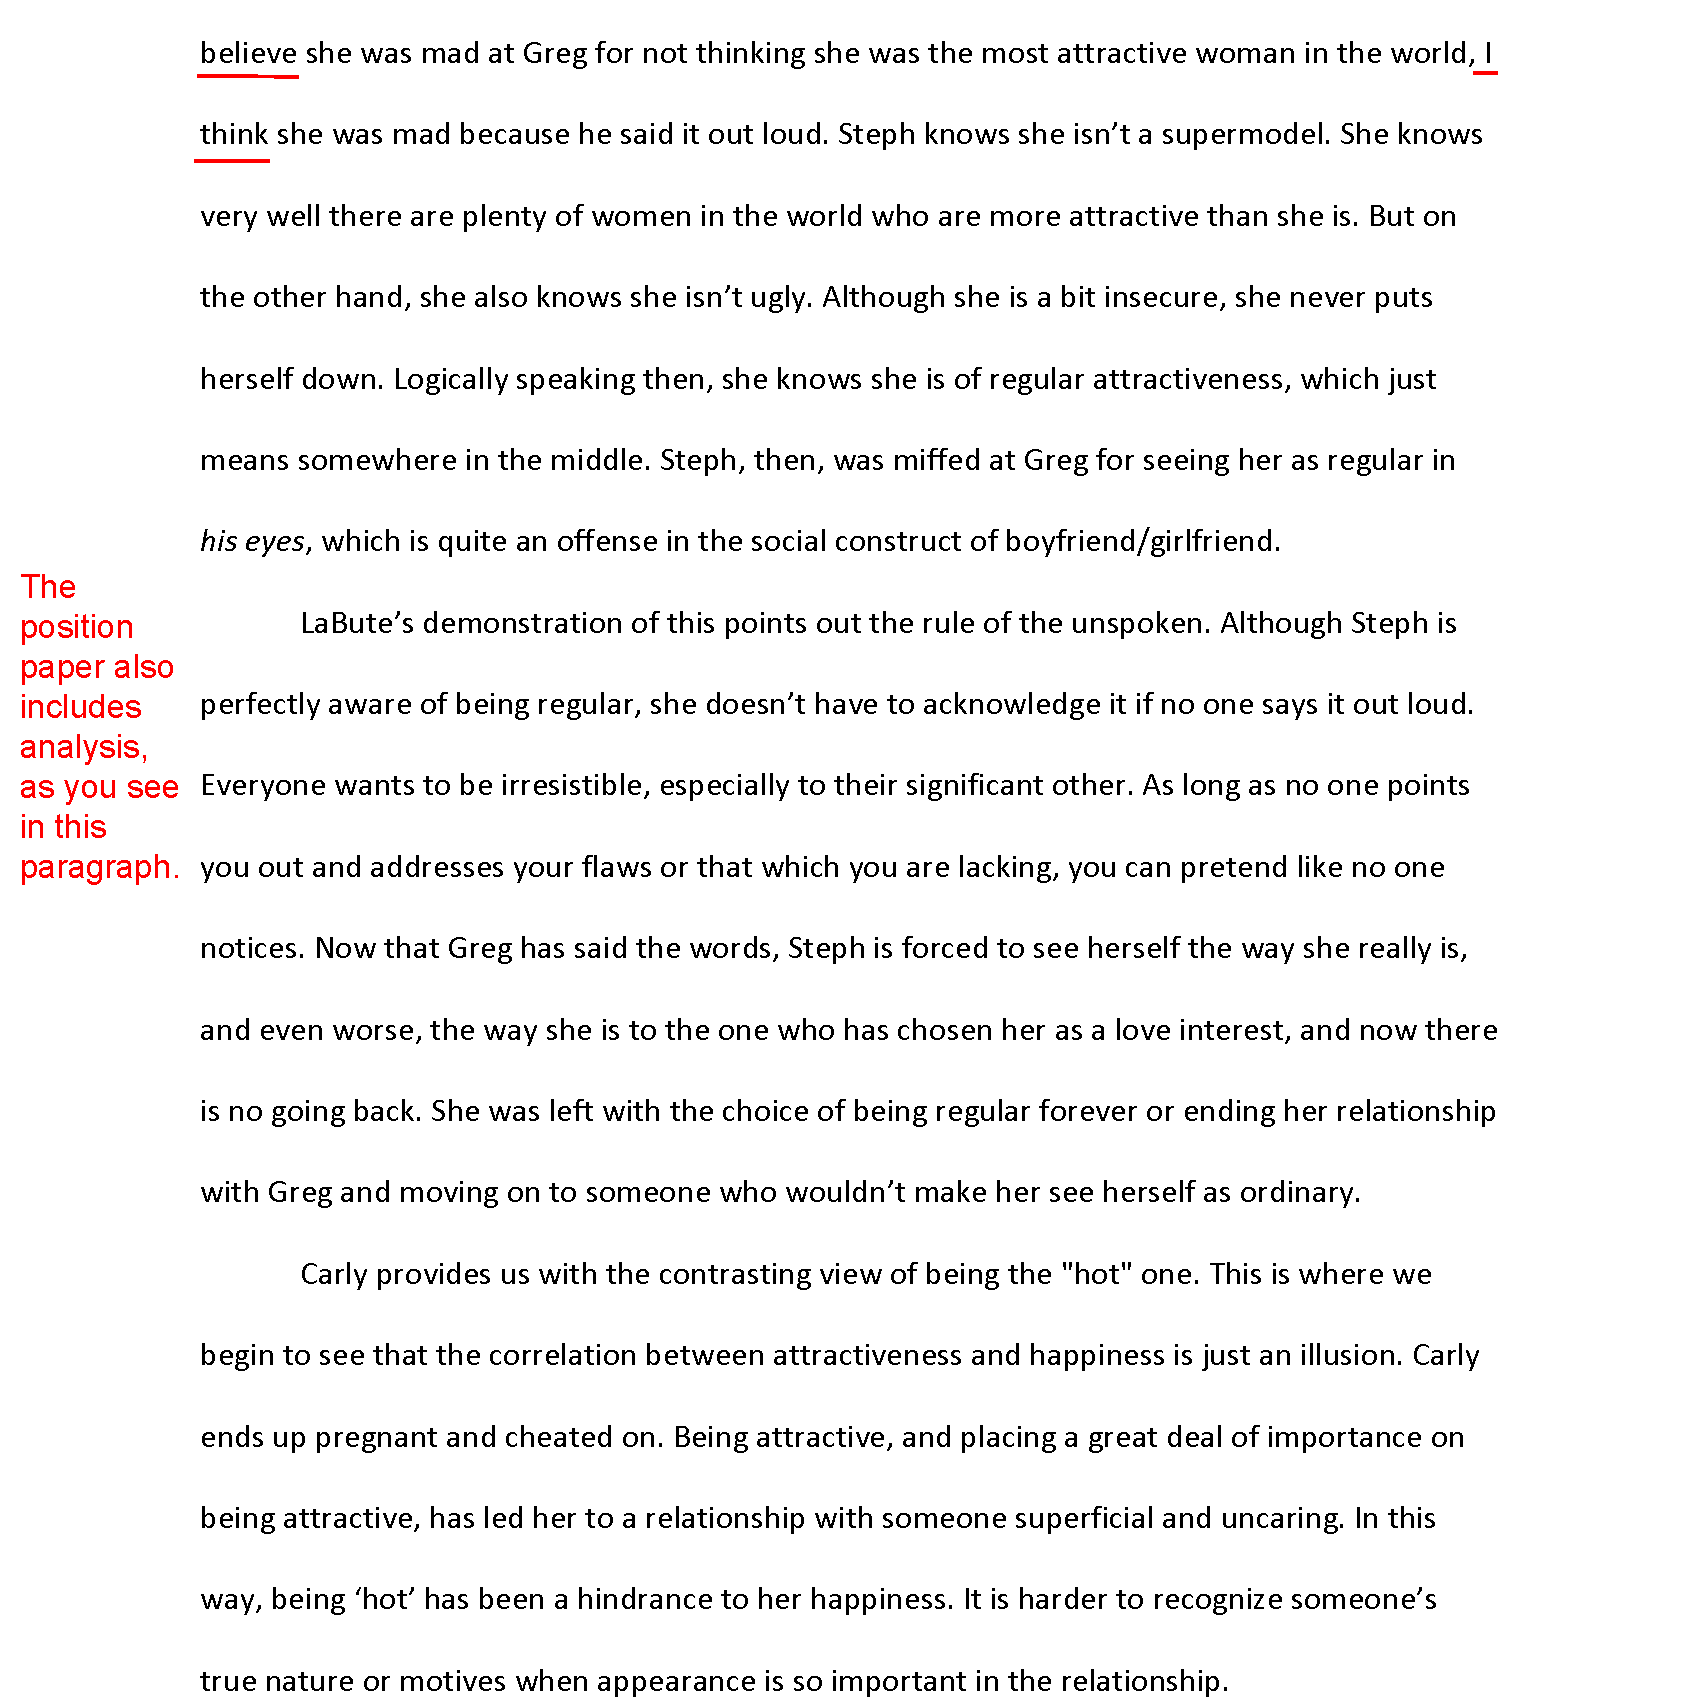 How To Write A Response Paper Expressing Your Position Clearly